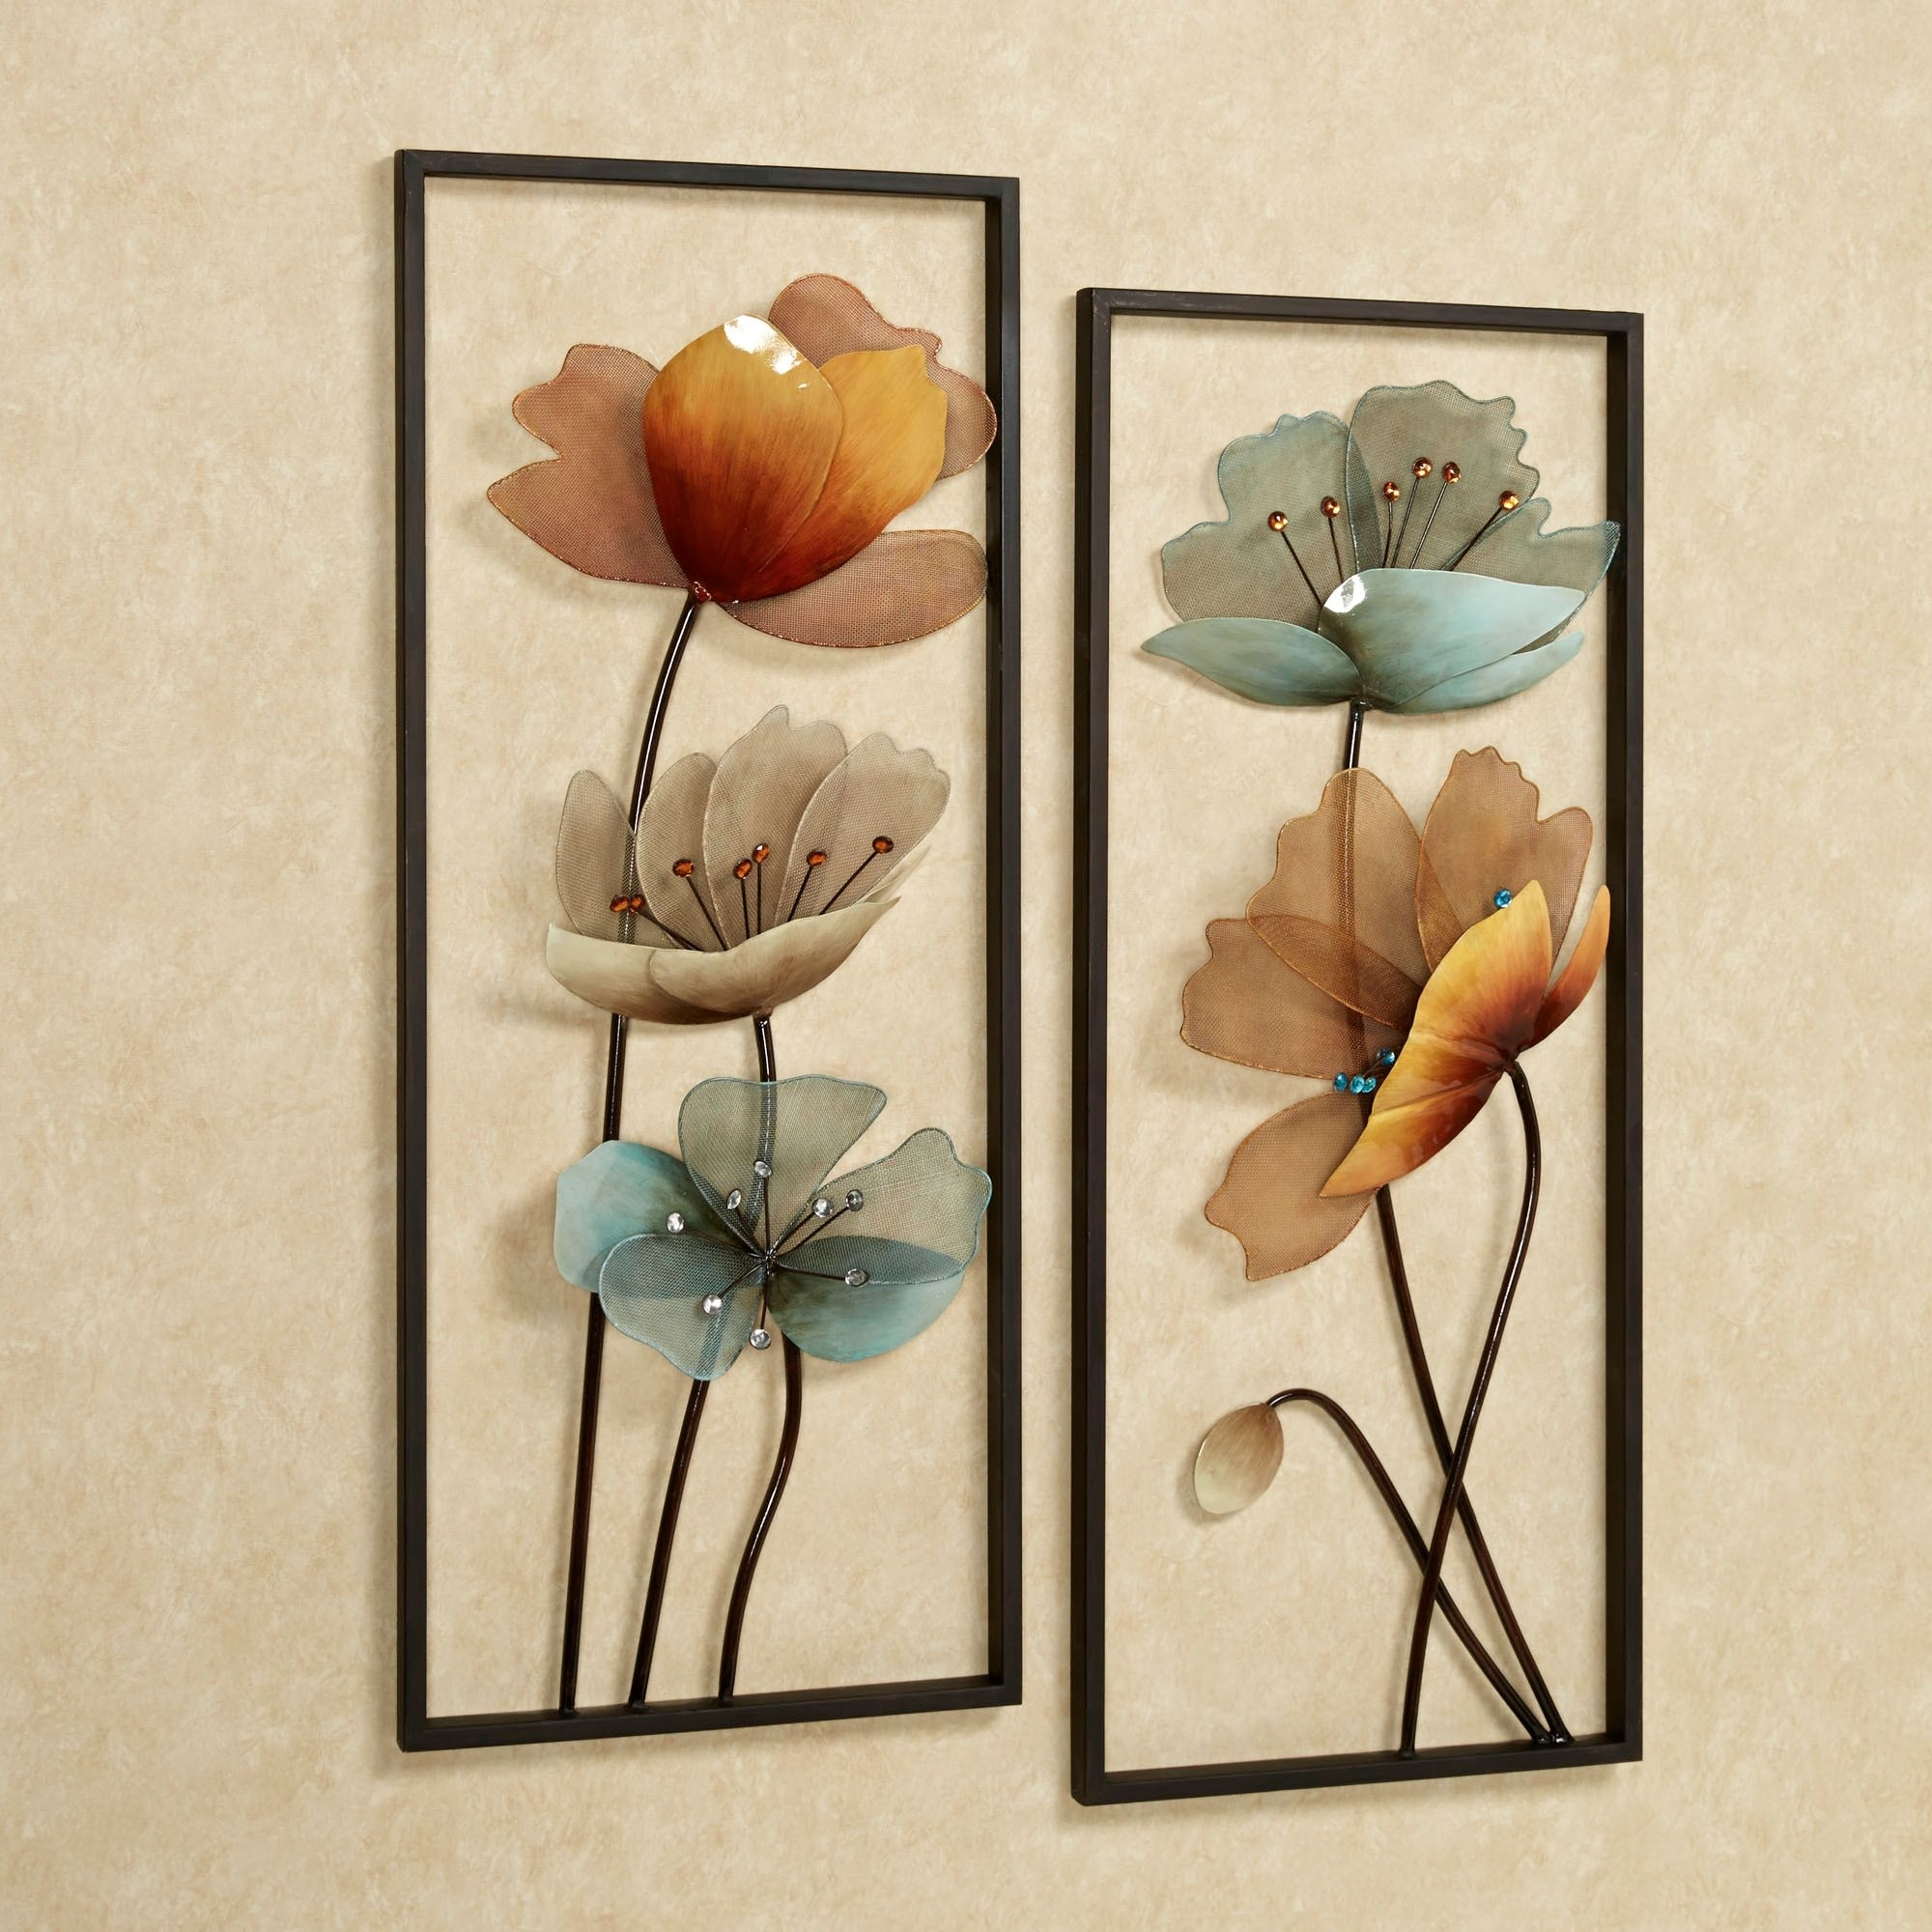 Glamorous Metal Wall Accents With Art For Modern Home For Recent Metal Wall Accents (View 4 of 15)